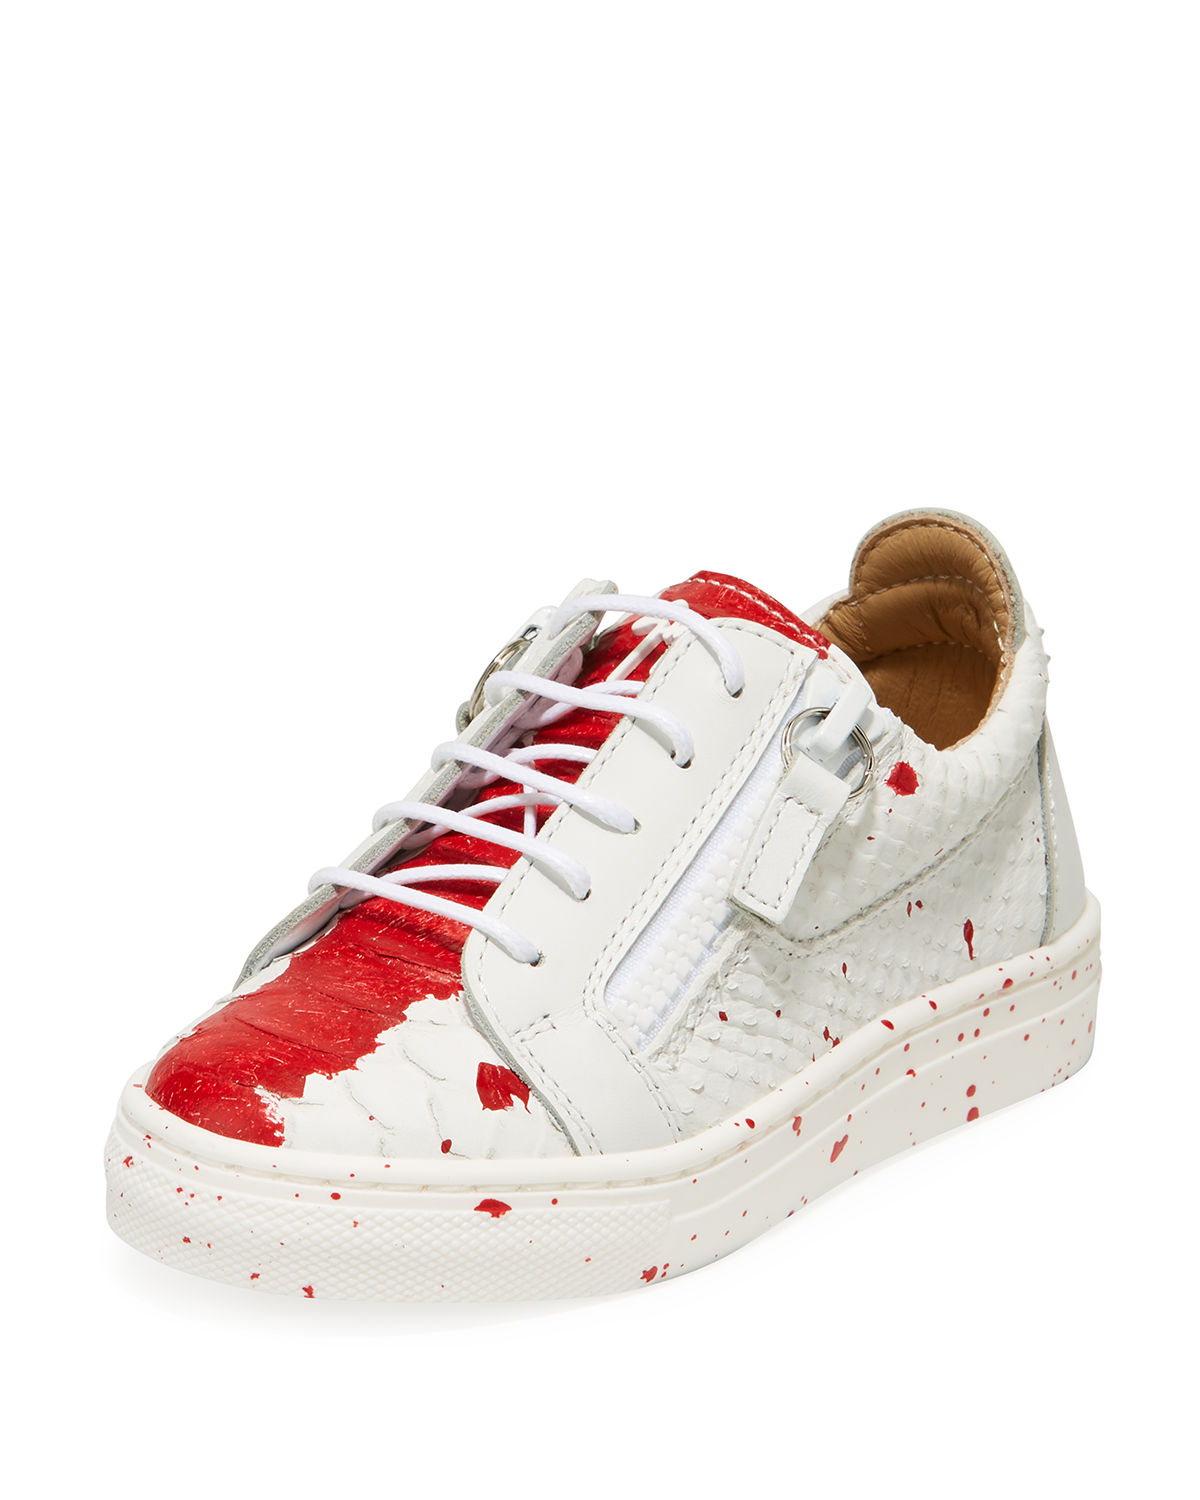 4b5f52d920d Snake-Embossed Leather Paint Splatter Low-Top Sneakers, Toddler